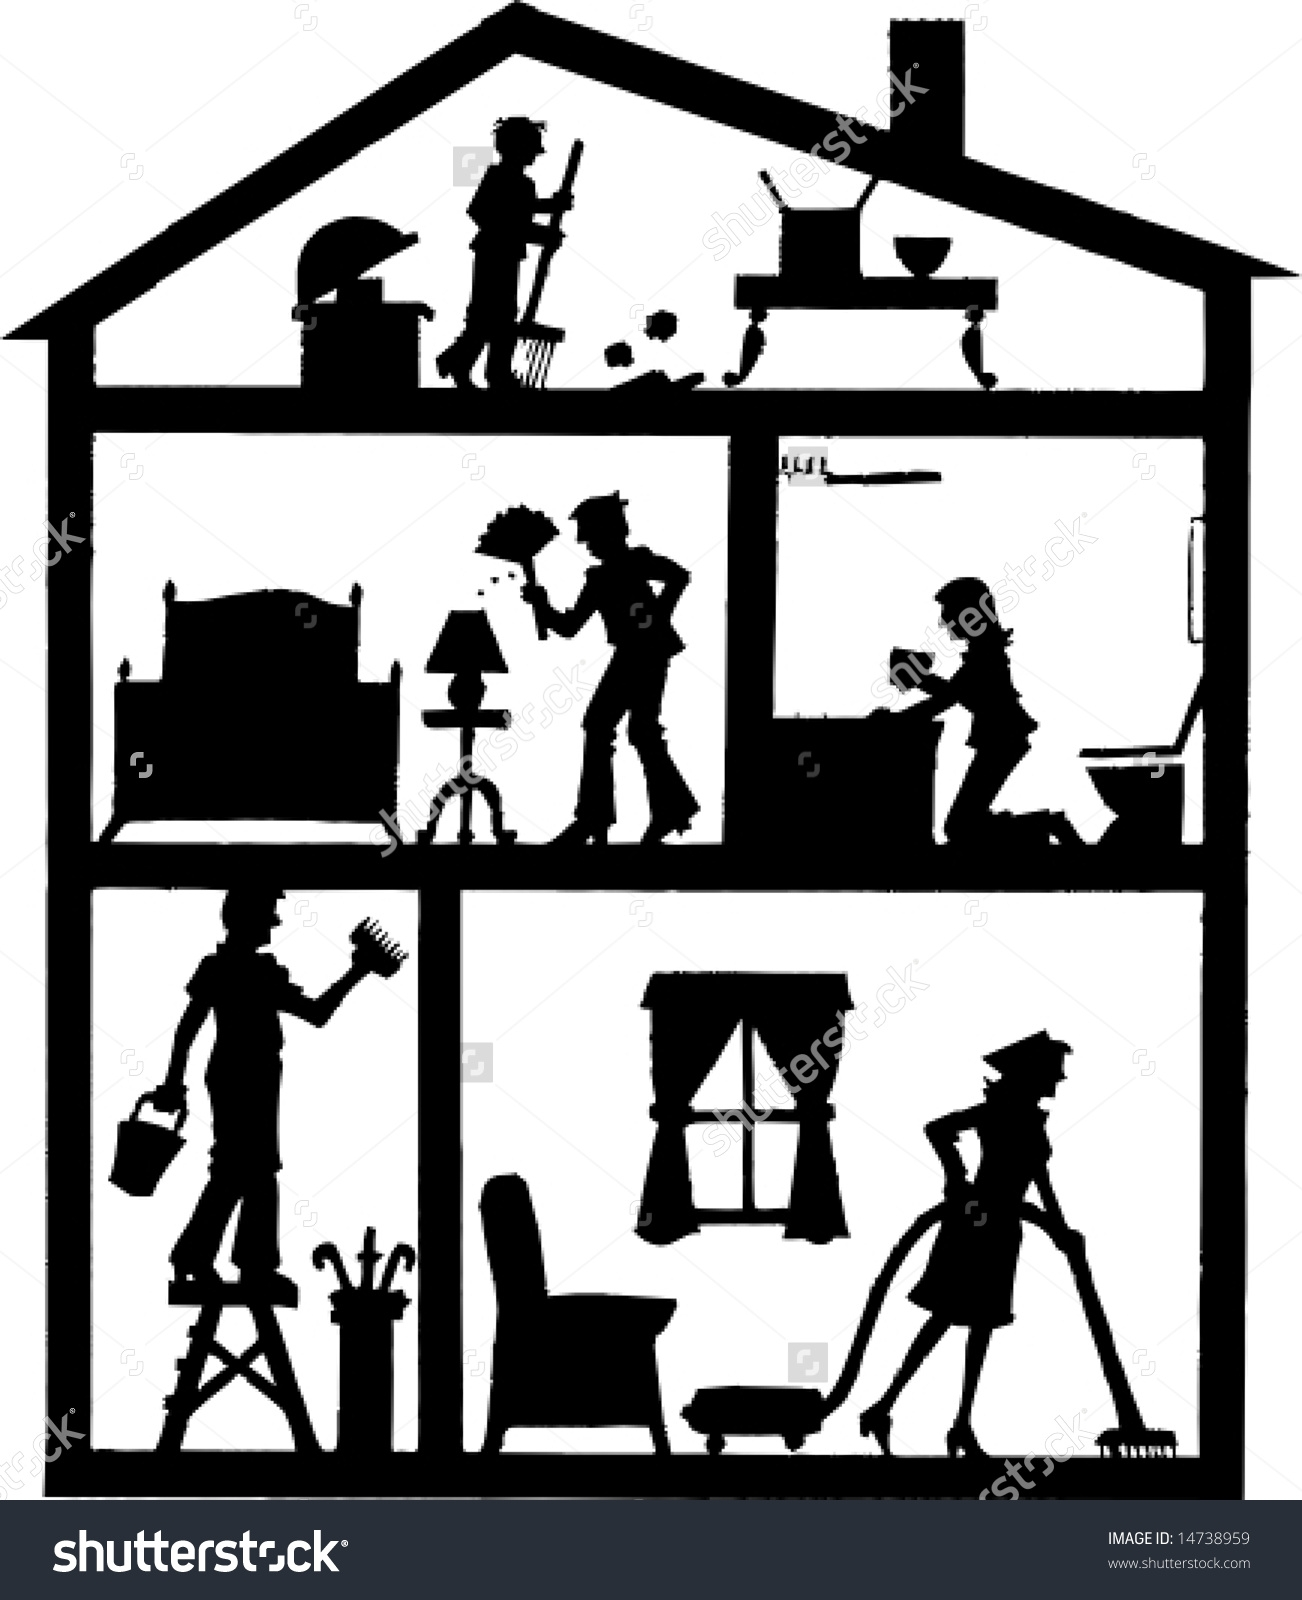 House Cleaning Clip Art Black and White.